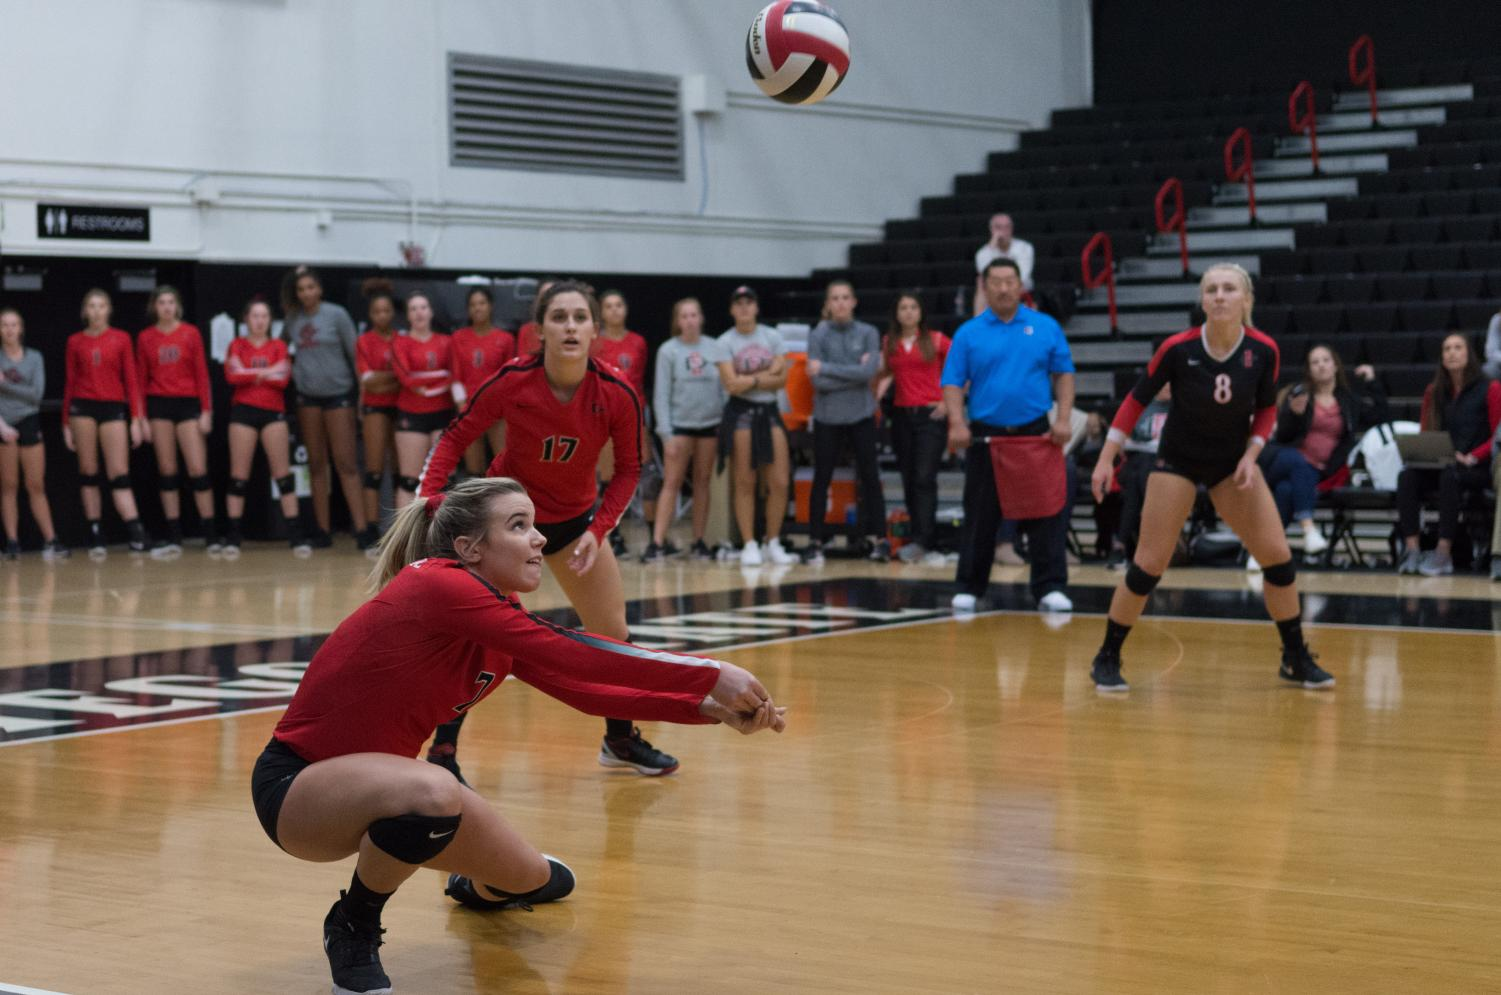 Then-junior outside hitter Hannah Turnlund looks to put the ball in play during the Aztecs four-set victory over Nevada on Nov. 15 at Peterson Gym.